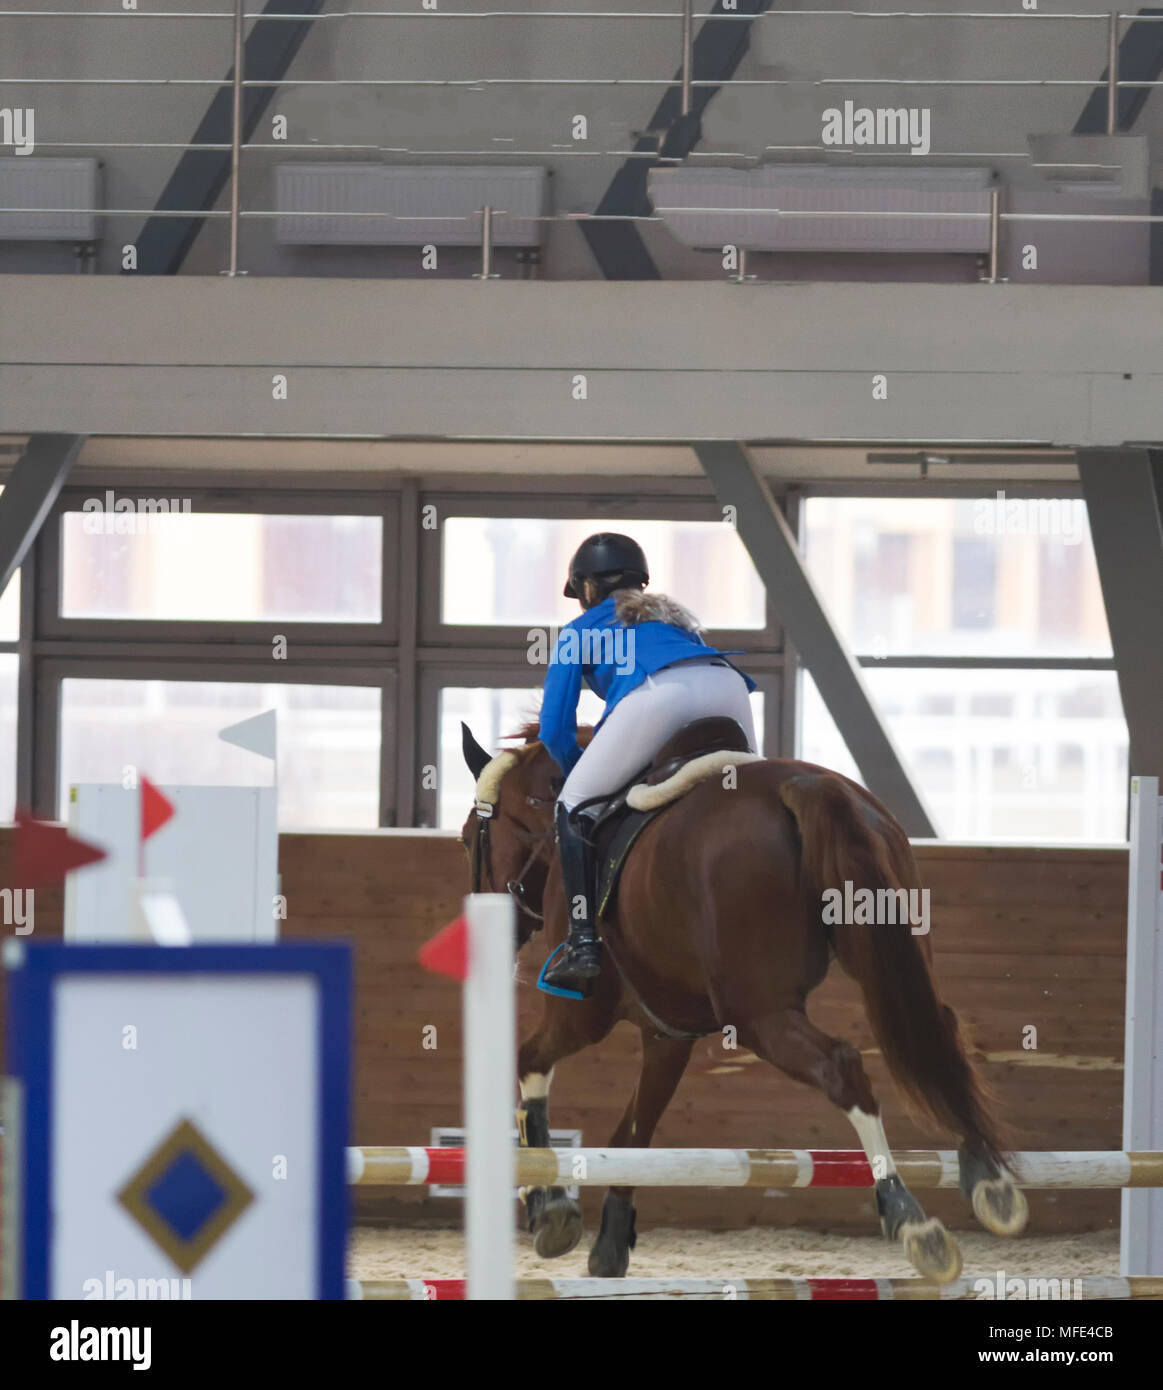 Rider performing jump on bay horse over a hurdle - Stock Image